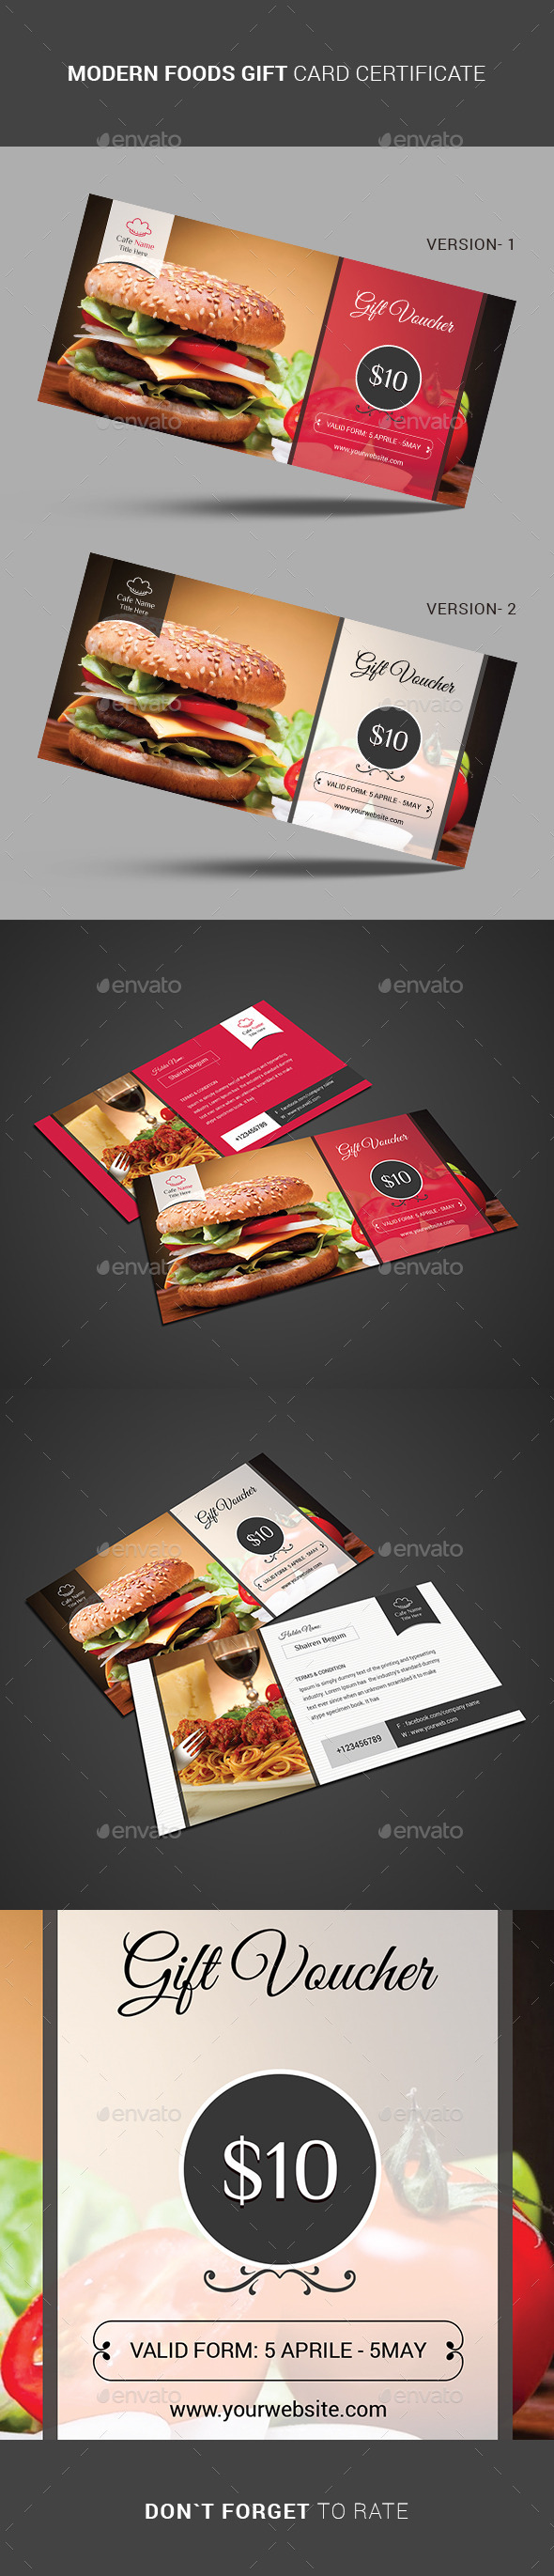 GraphicRiver Modern FOODS Gift Card Certificate 11446583